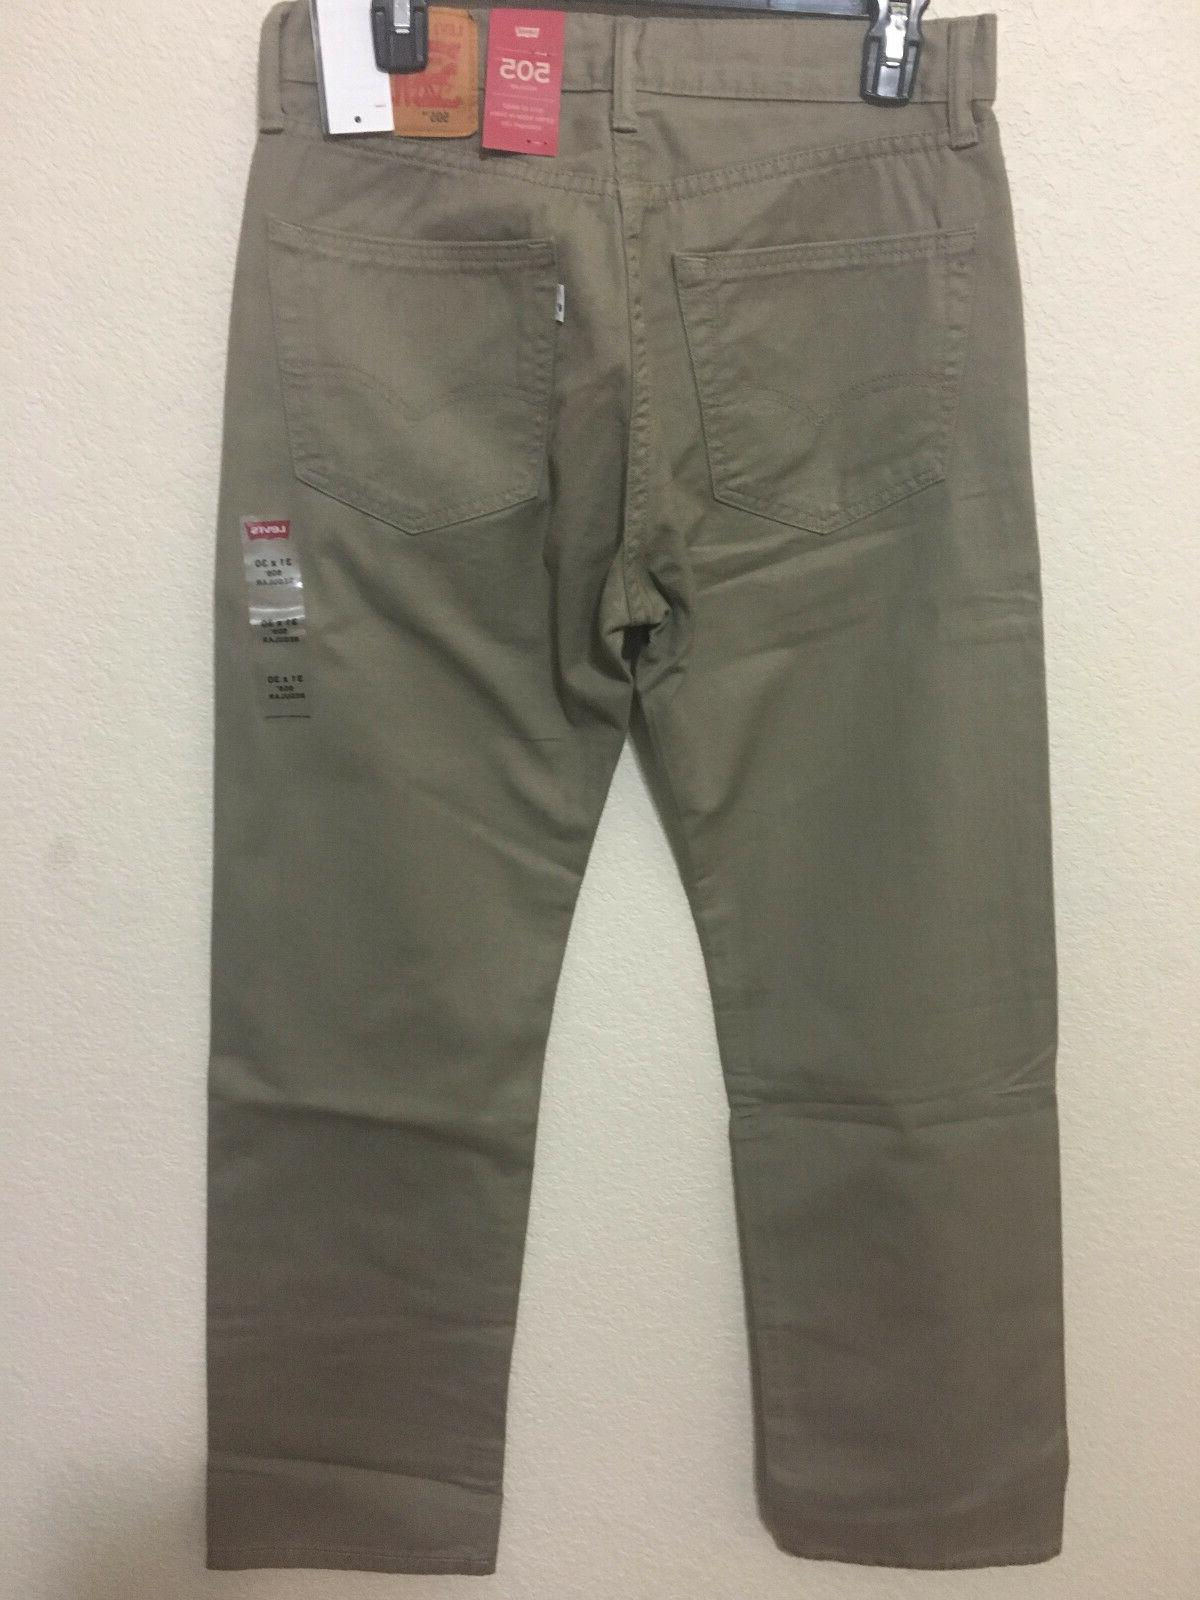 NWT MEN - 0718 REGULAR STRAIGHT LEG PANT DENIM TIMBER WOLF